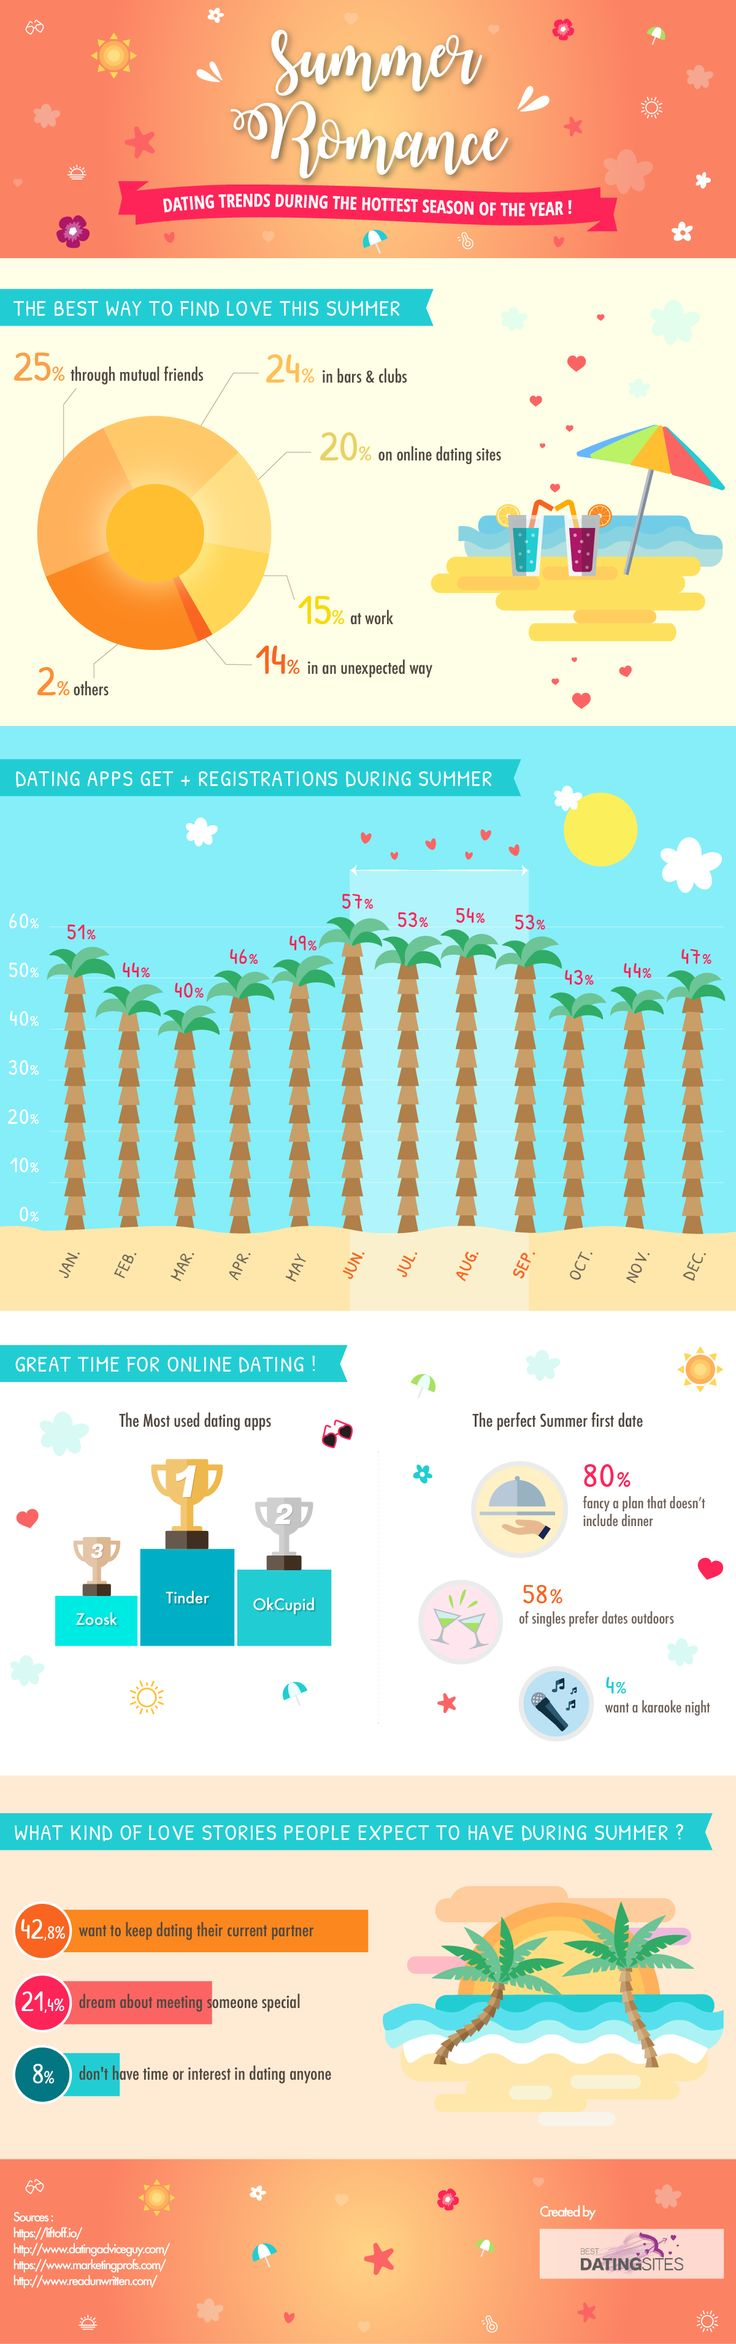 Love is a time to meet new people... romance and dates under the sun... in this infographic we investigate single's habits in summer to undercover the meaning of Summer Love!